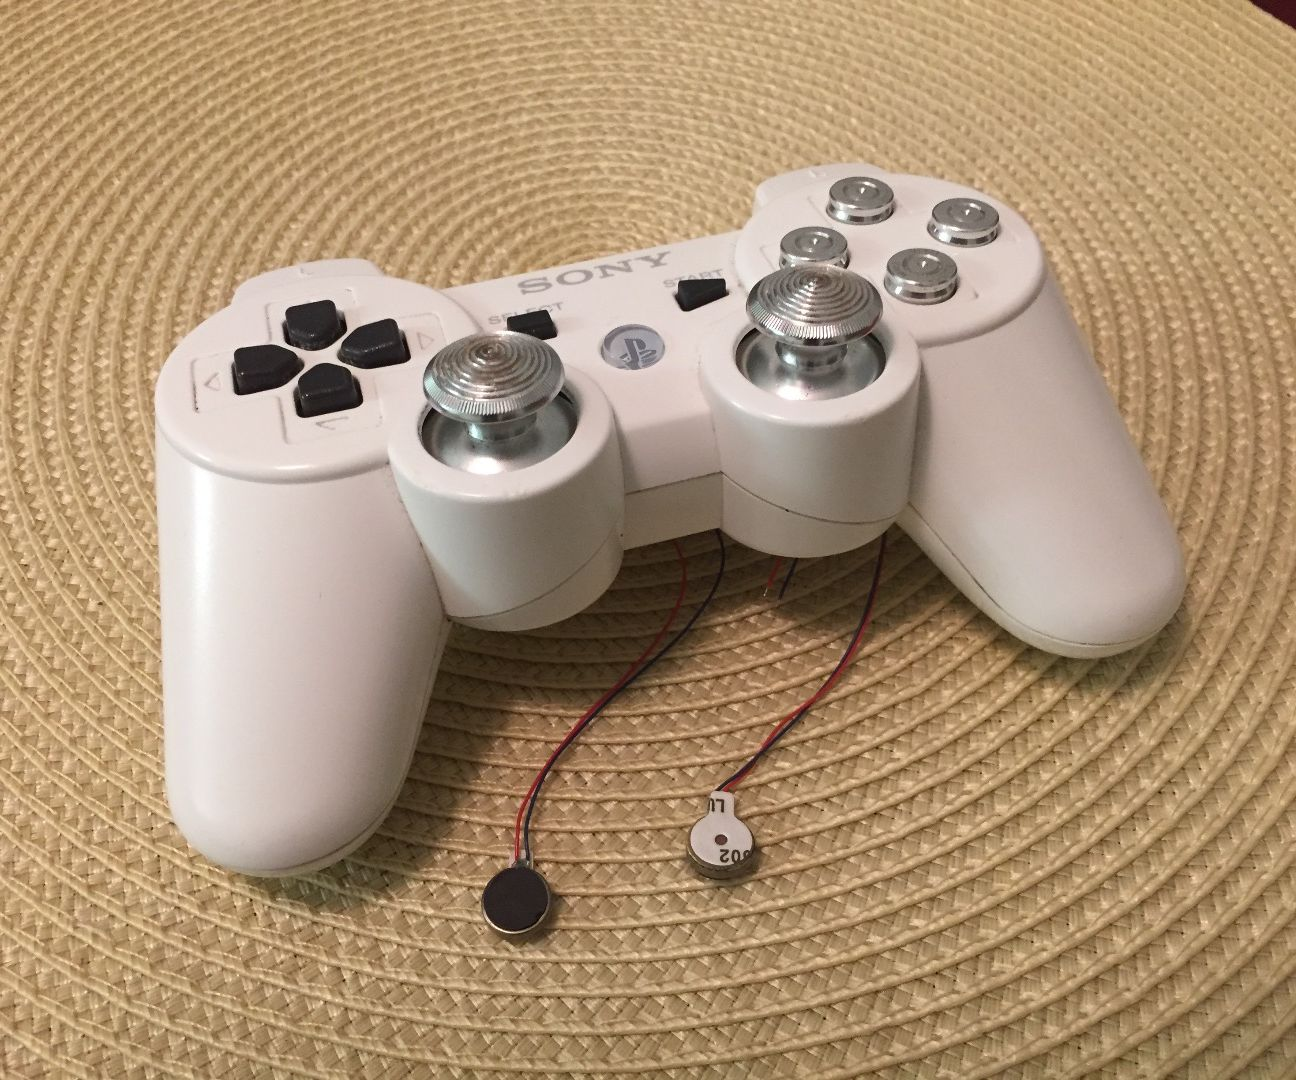 Vibration triggers on PlayStation 3 Controller